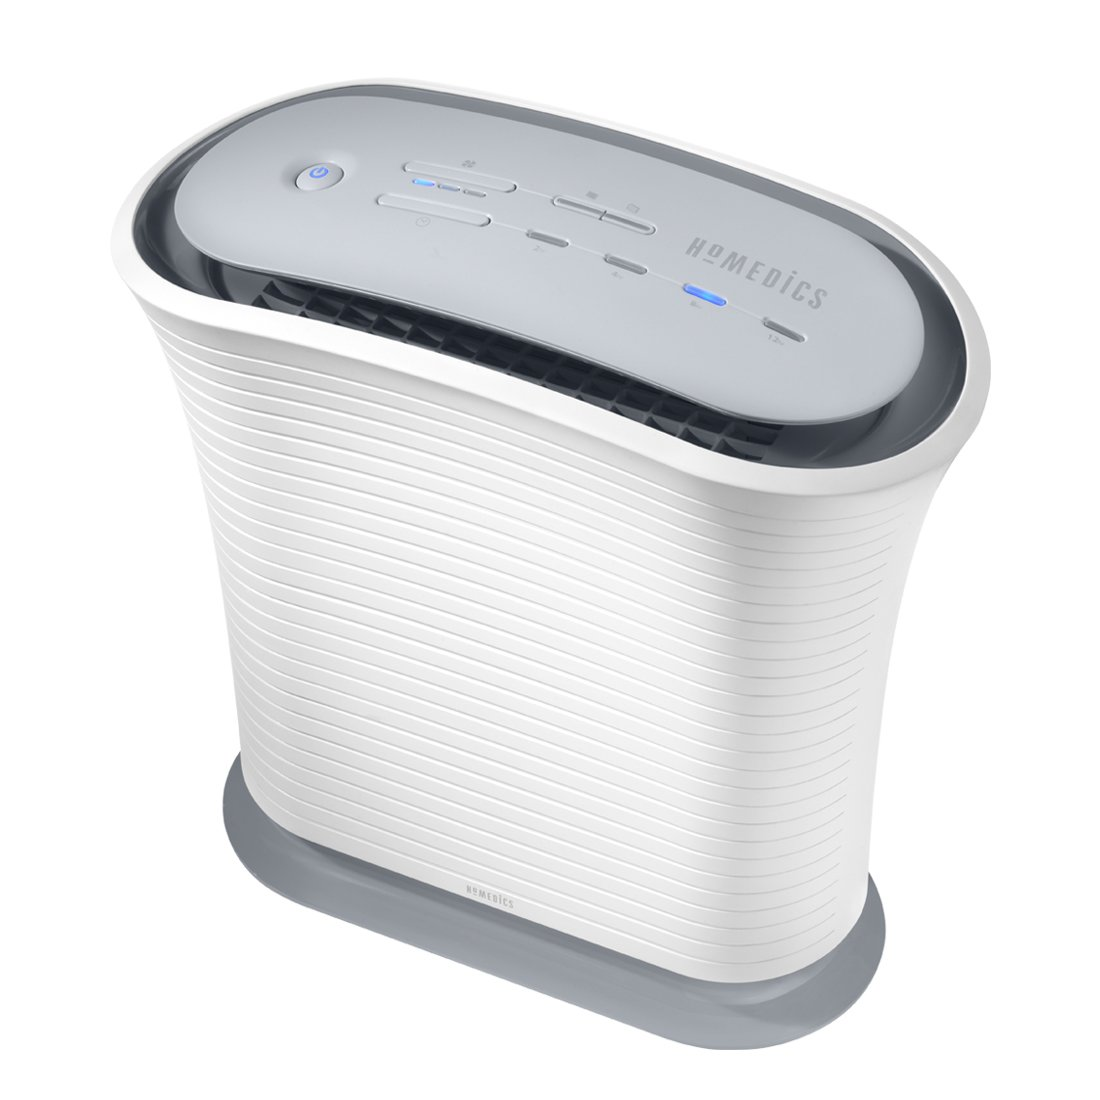 HoMedics TotalClean True HEPA Air Purifier Fan for Medium Room, Keep Air Fresh, Protect from Allergy Infected Air, 3 Speeds + Night Mode, Eliminate 99% of Allergens, Relieve Asthma, Hay Fever - White